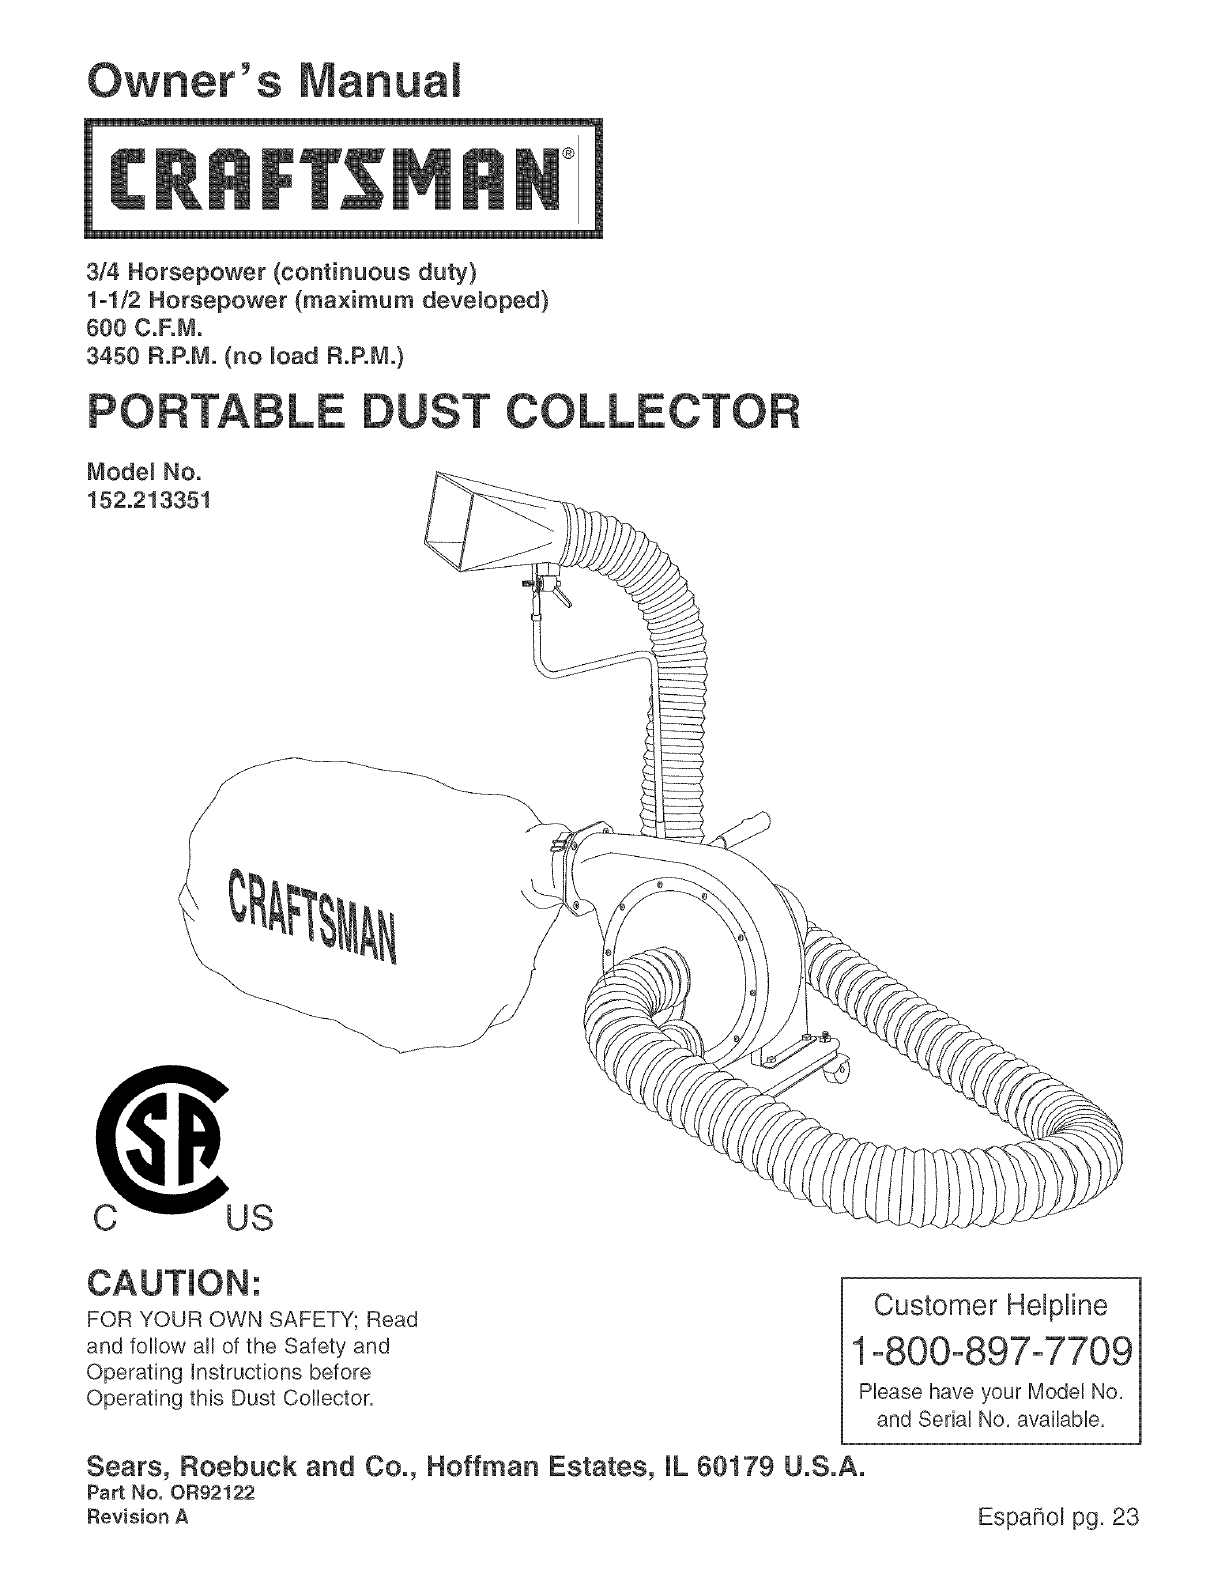 craftsman dust collector 152 213351 user guide manualsonline com rh powertool manualsonline com Dust Collectors for Woodworking Craftsman Radial Arm Saw Dust Collector